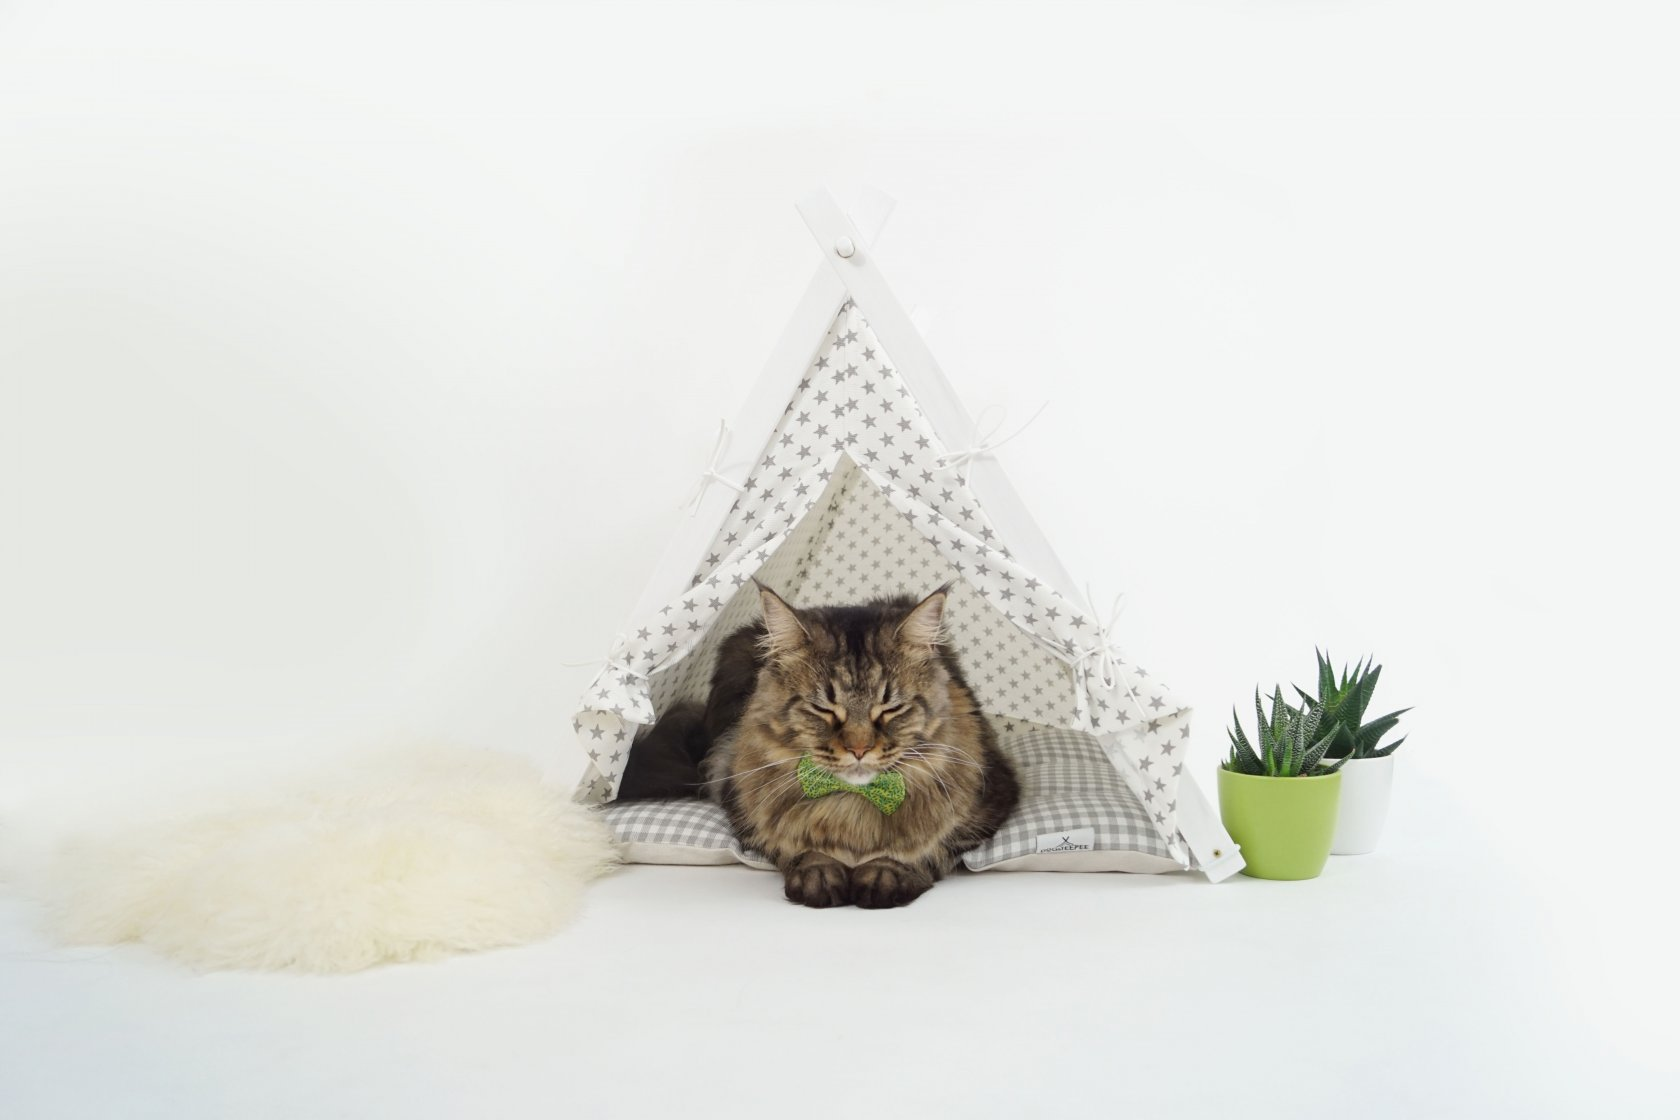 Cat sleeping in the tipi